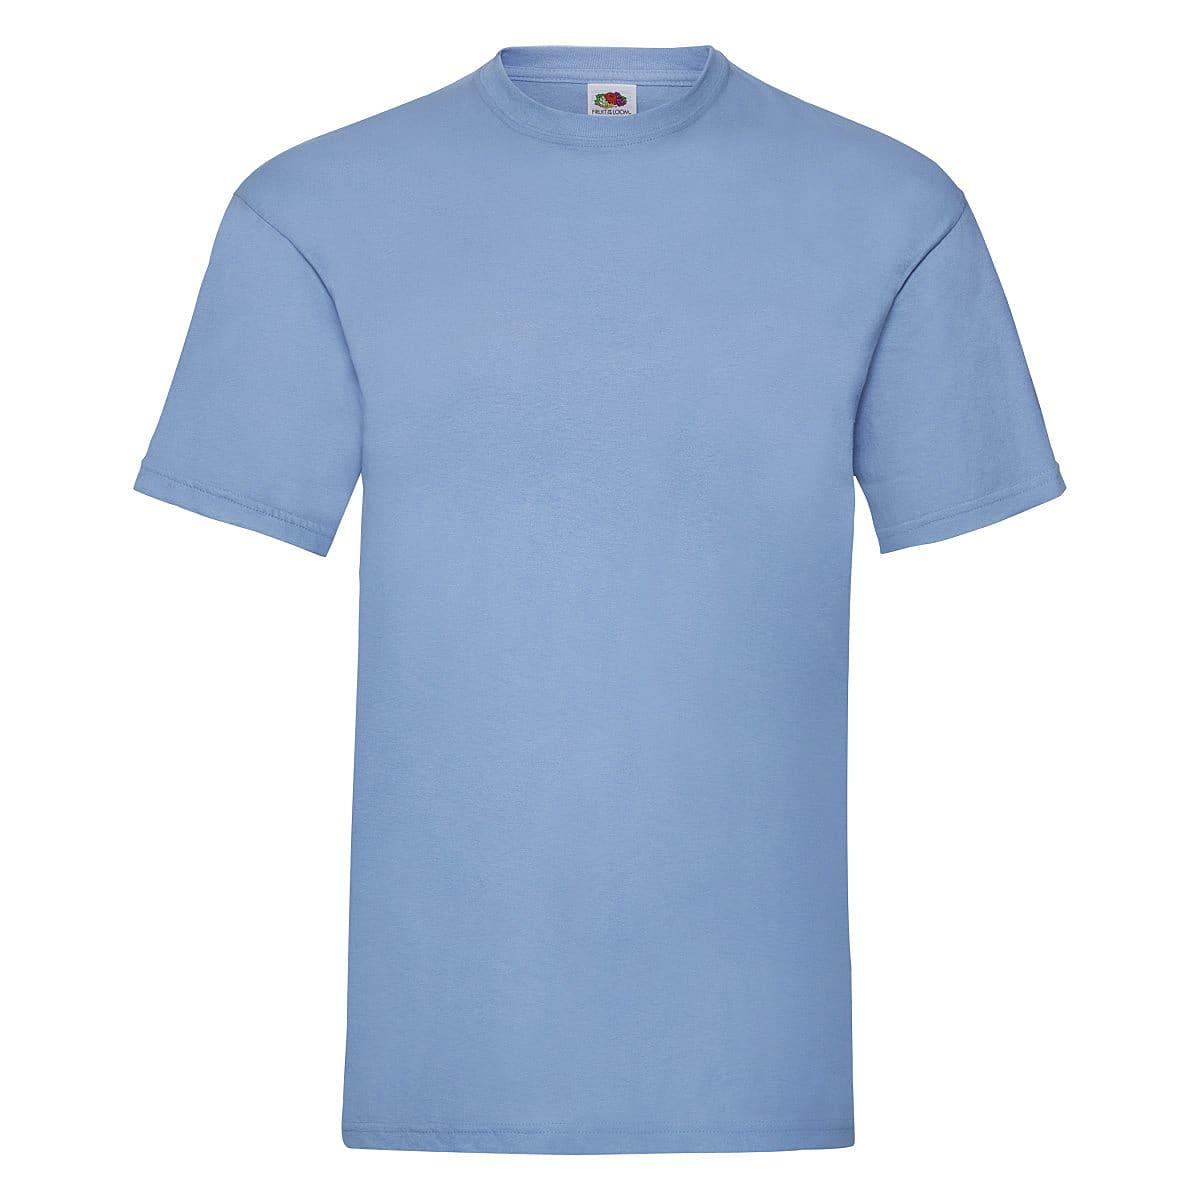 Fruit Of The Loom Valueweight T-Shirt in Sky Blue (Product Code: 61036)